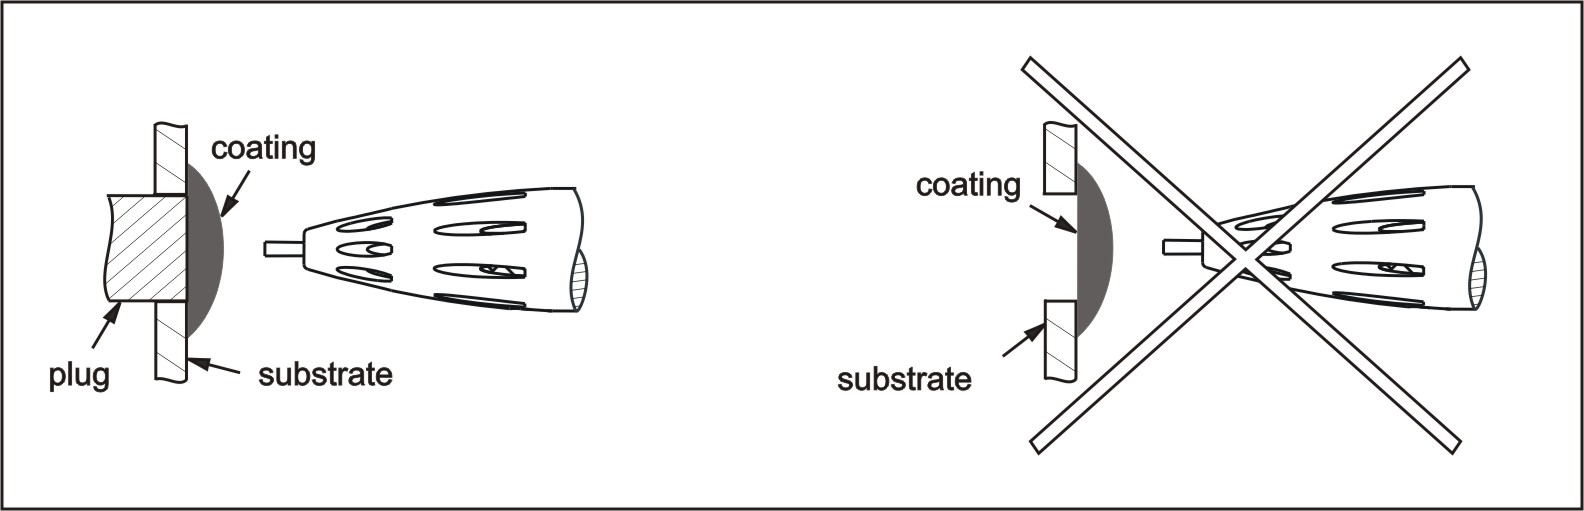 Figure 5: Coating Through-Holes in Substrate